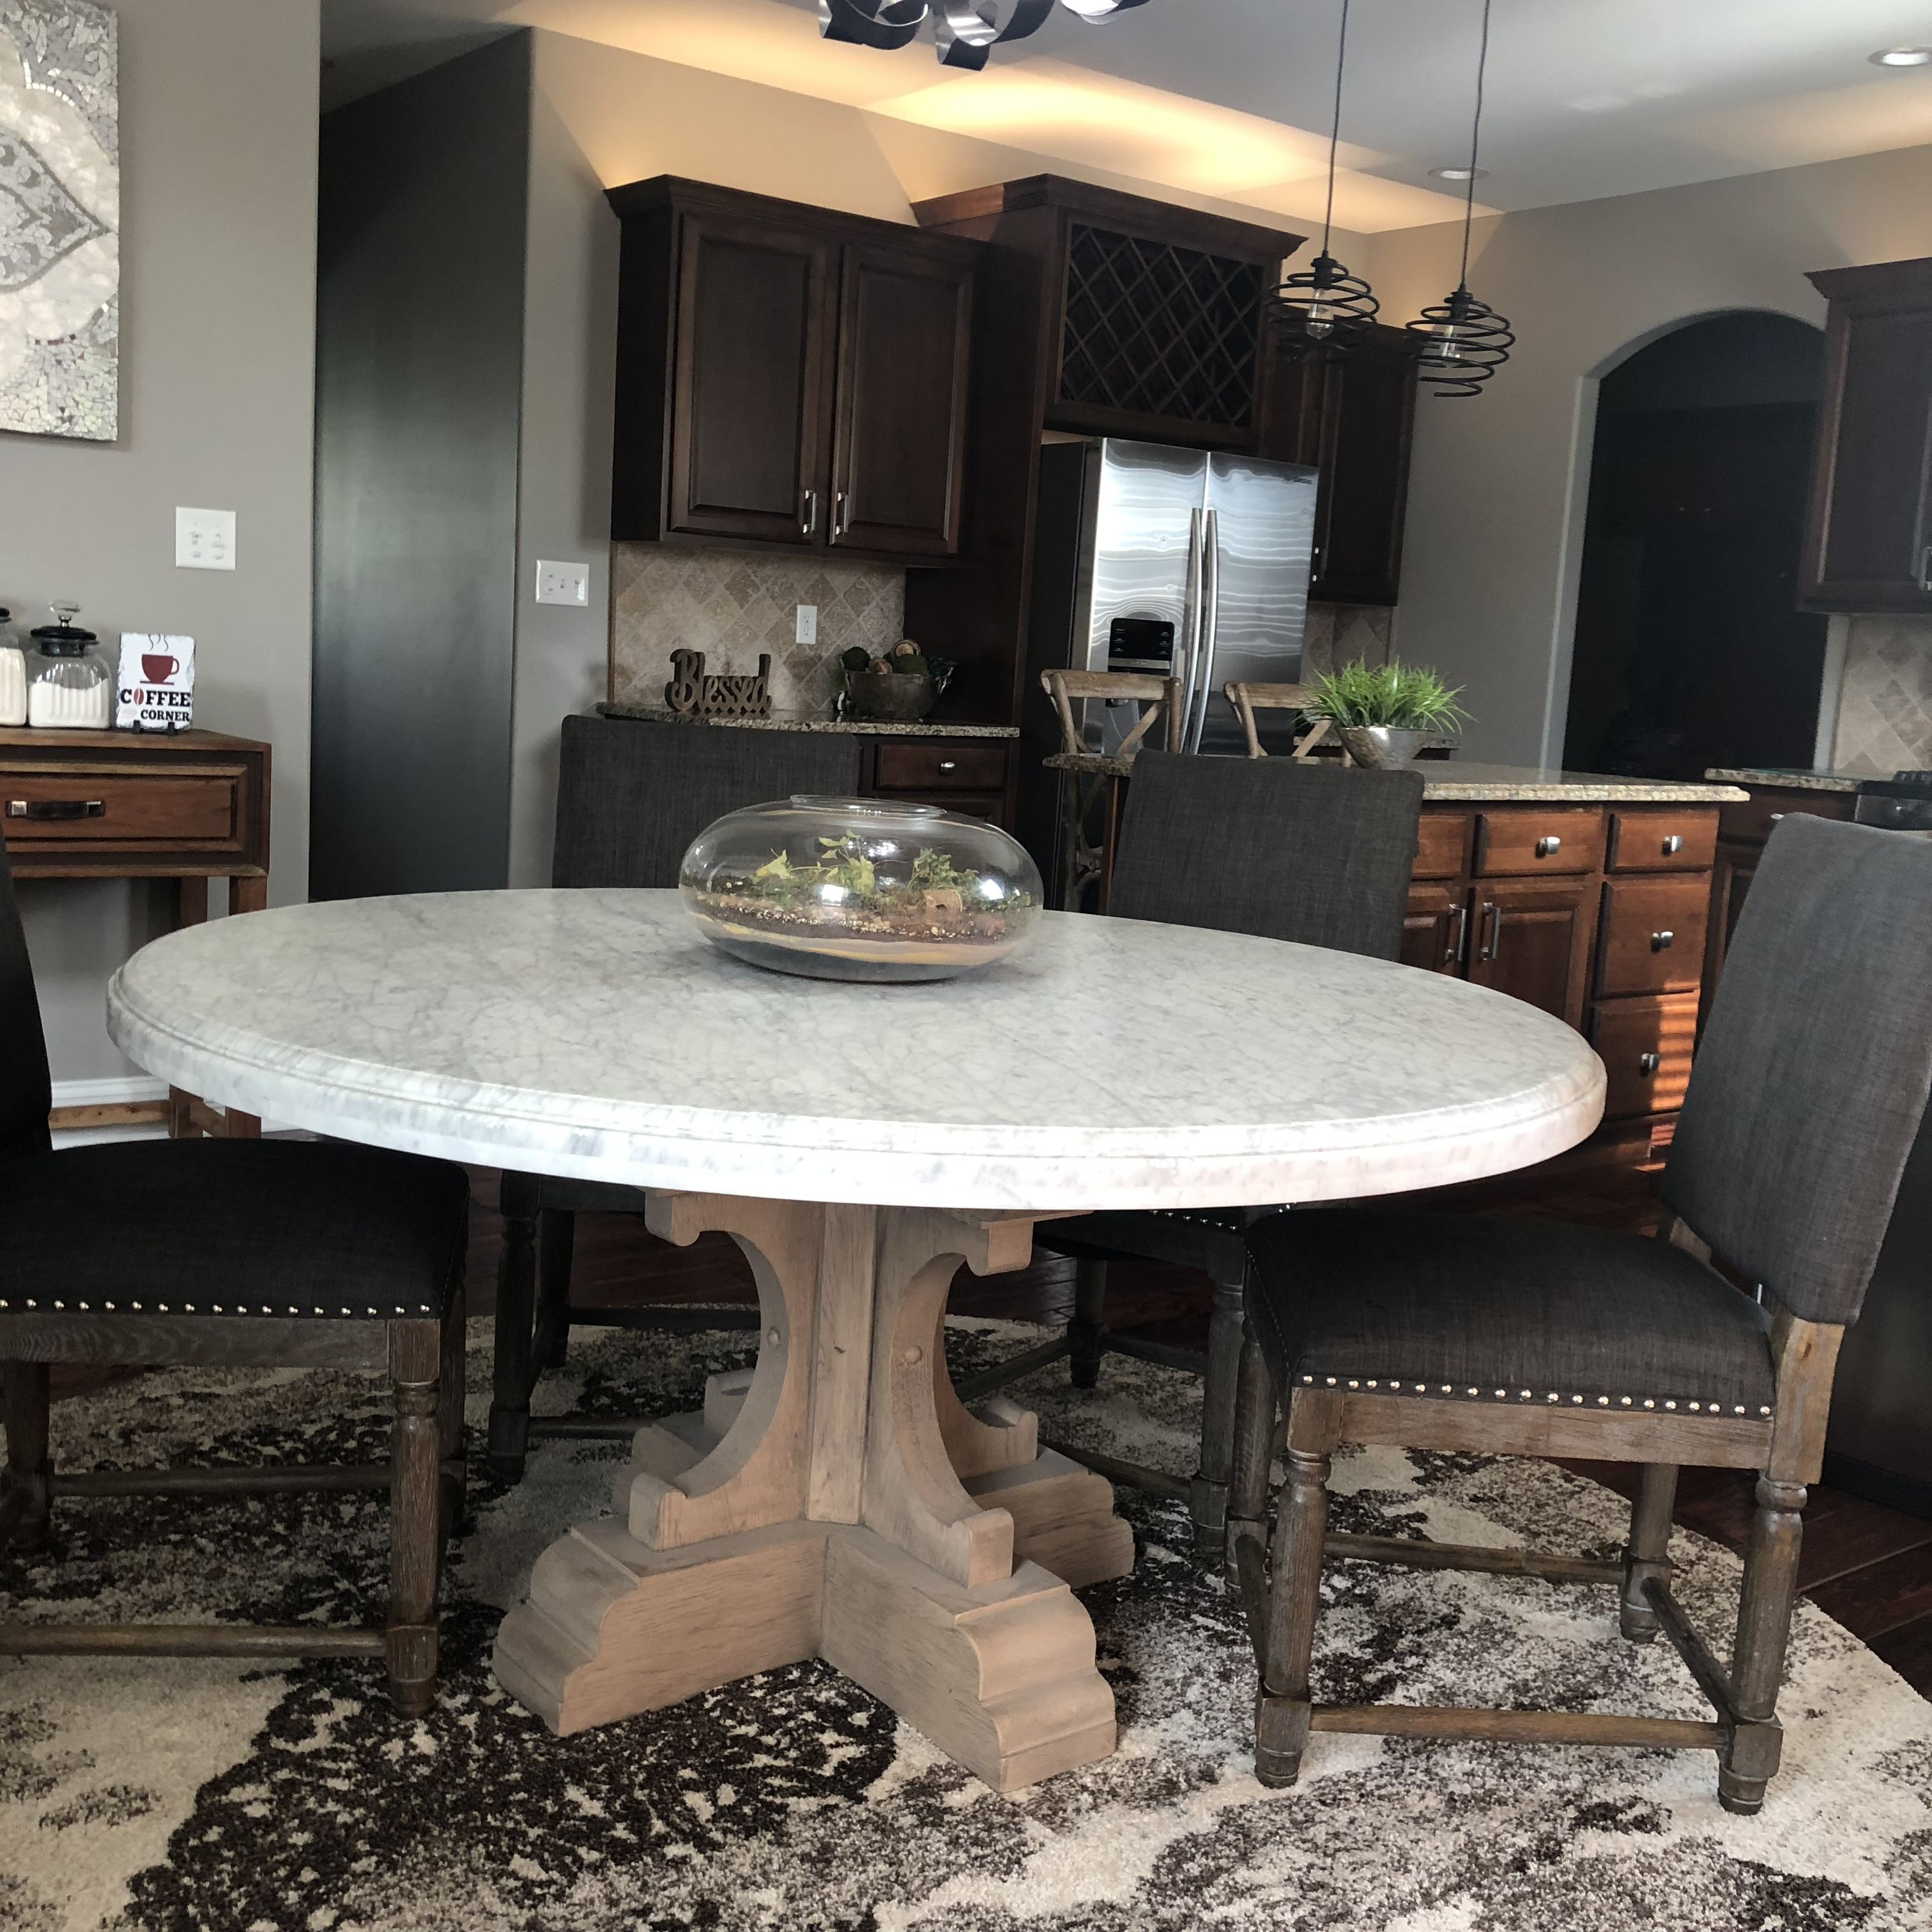 Restoration Hardware Marble Table Sweet Home Marble Table Table